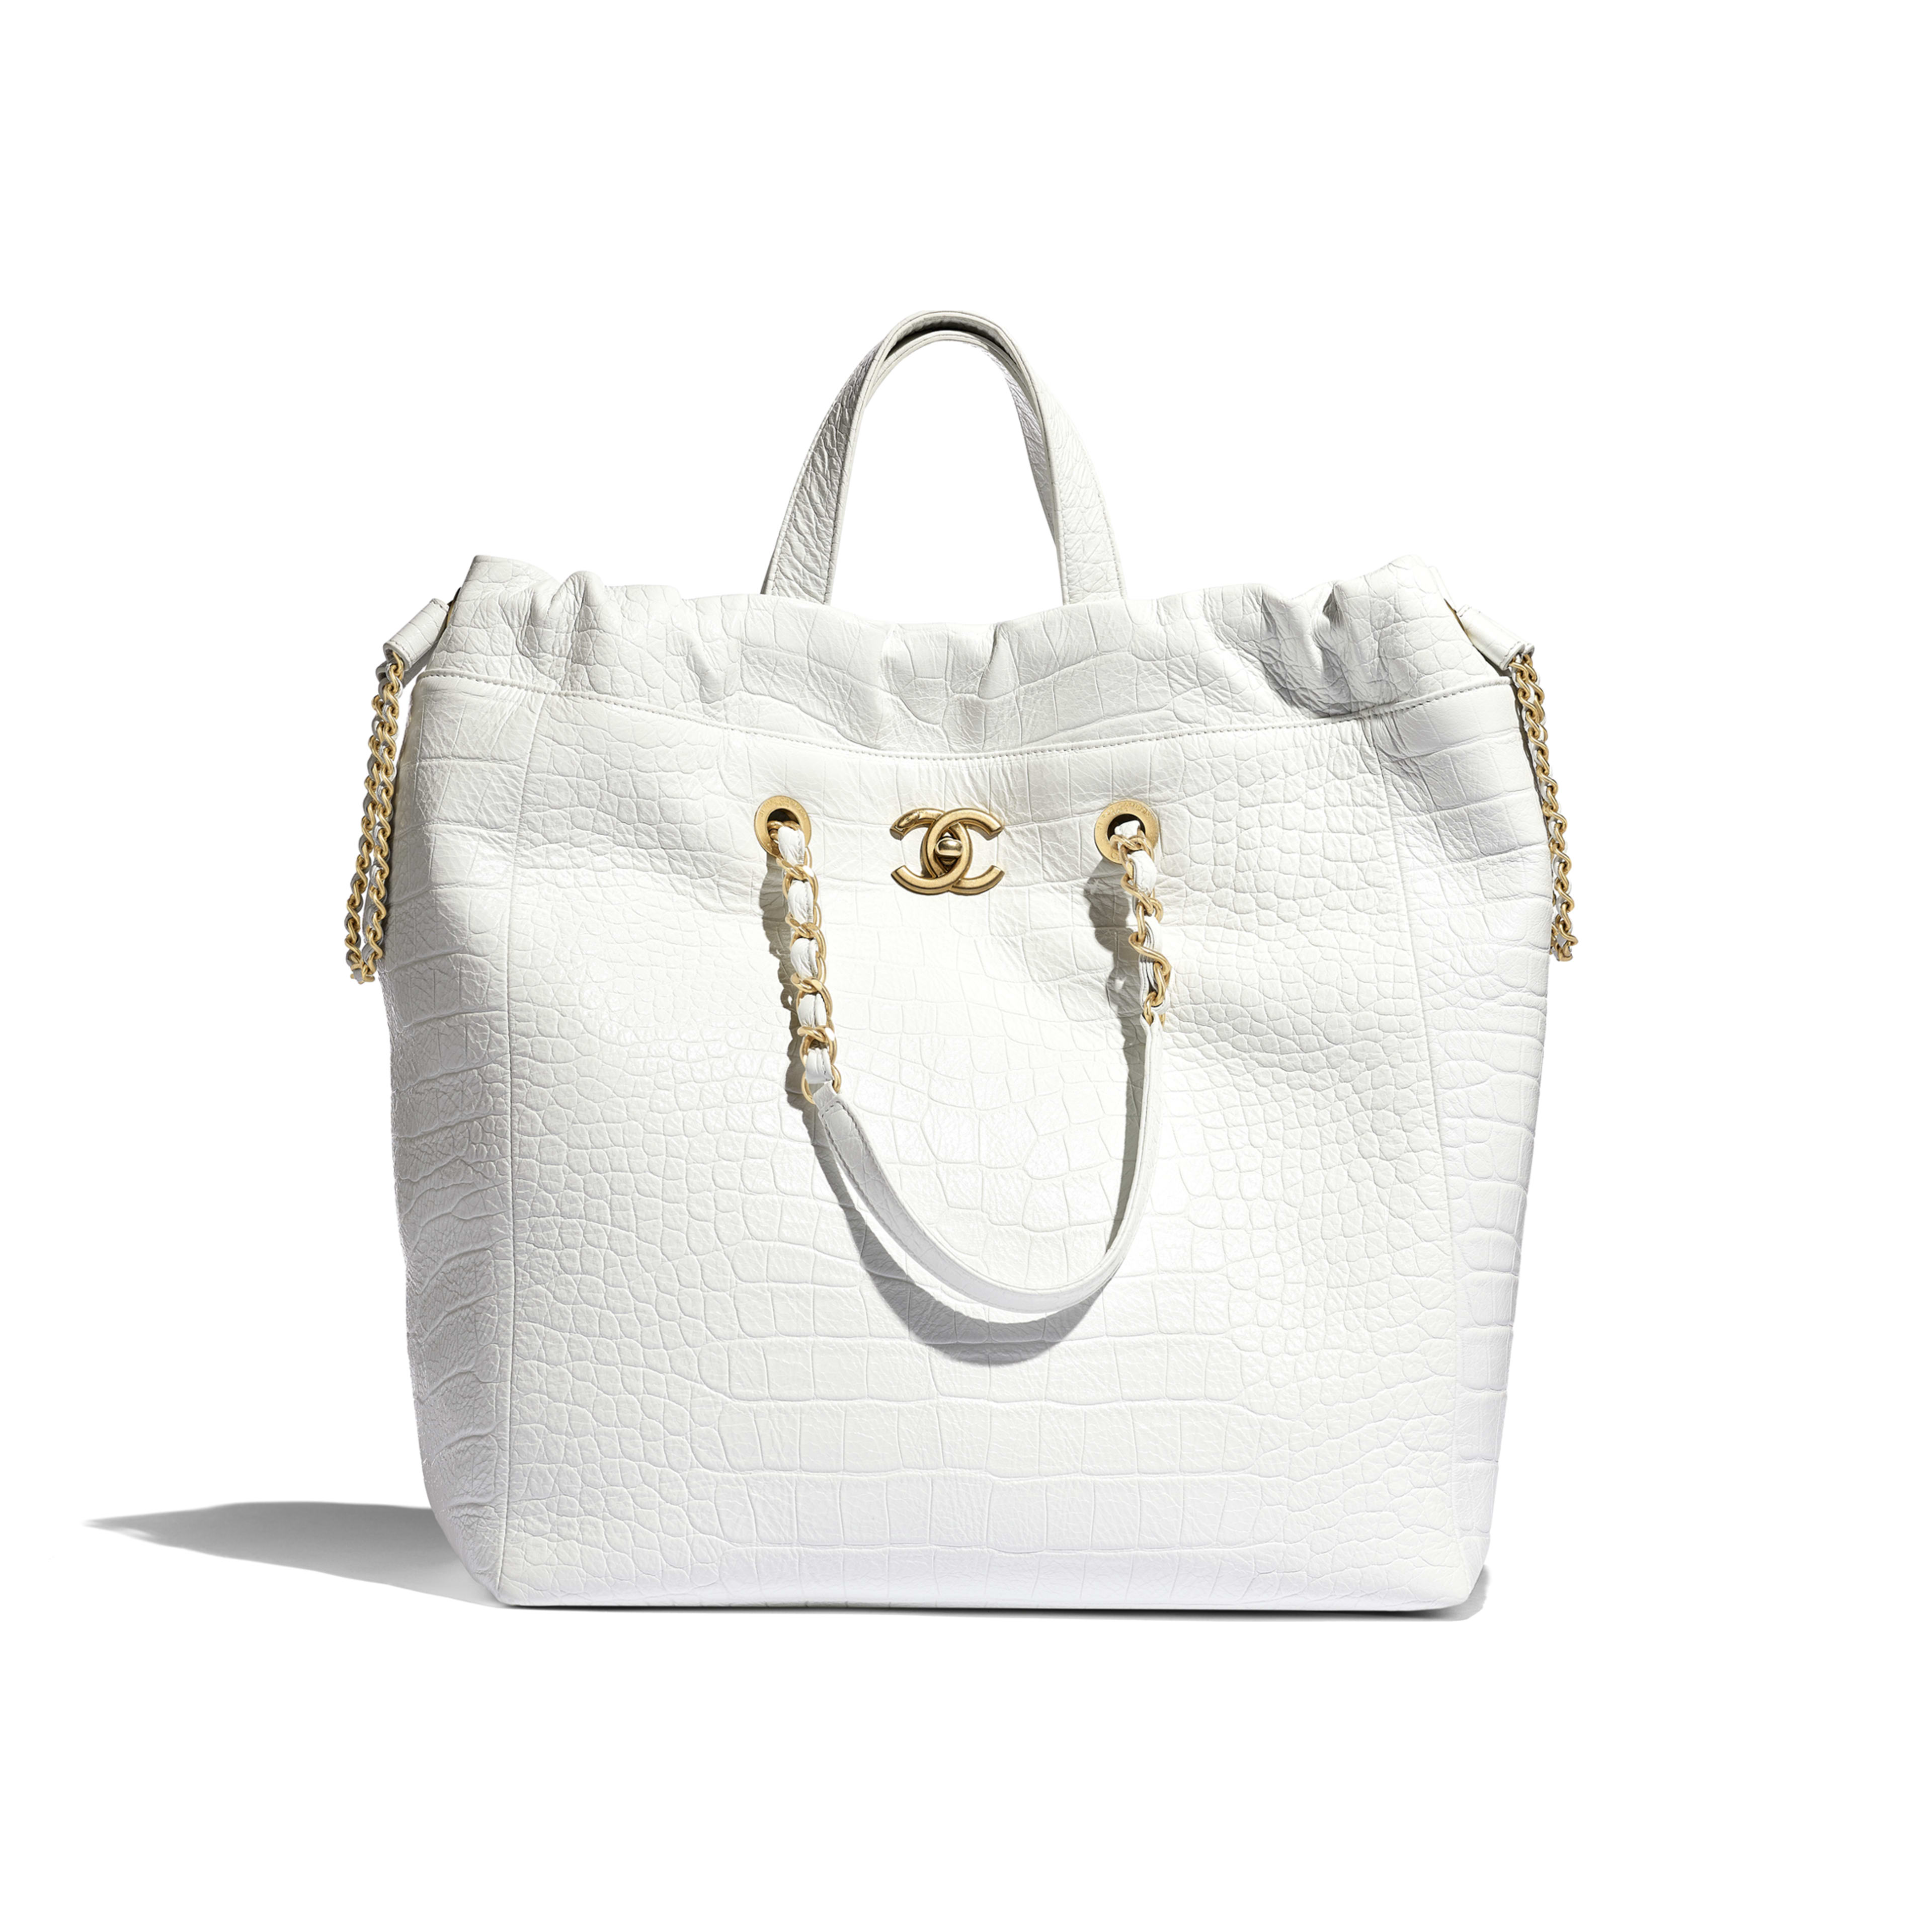 Large Shopping Bag - White - Crocodile Embossed Printed Leather & Gold-Tone Metal - Default view - see full sized version